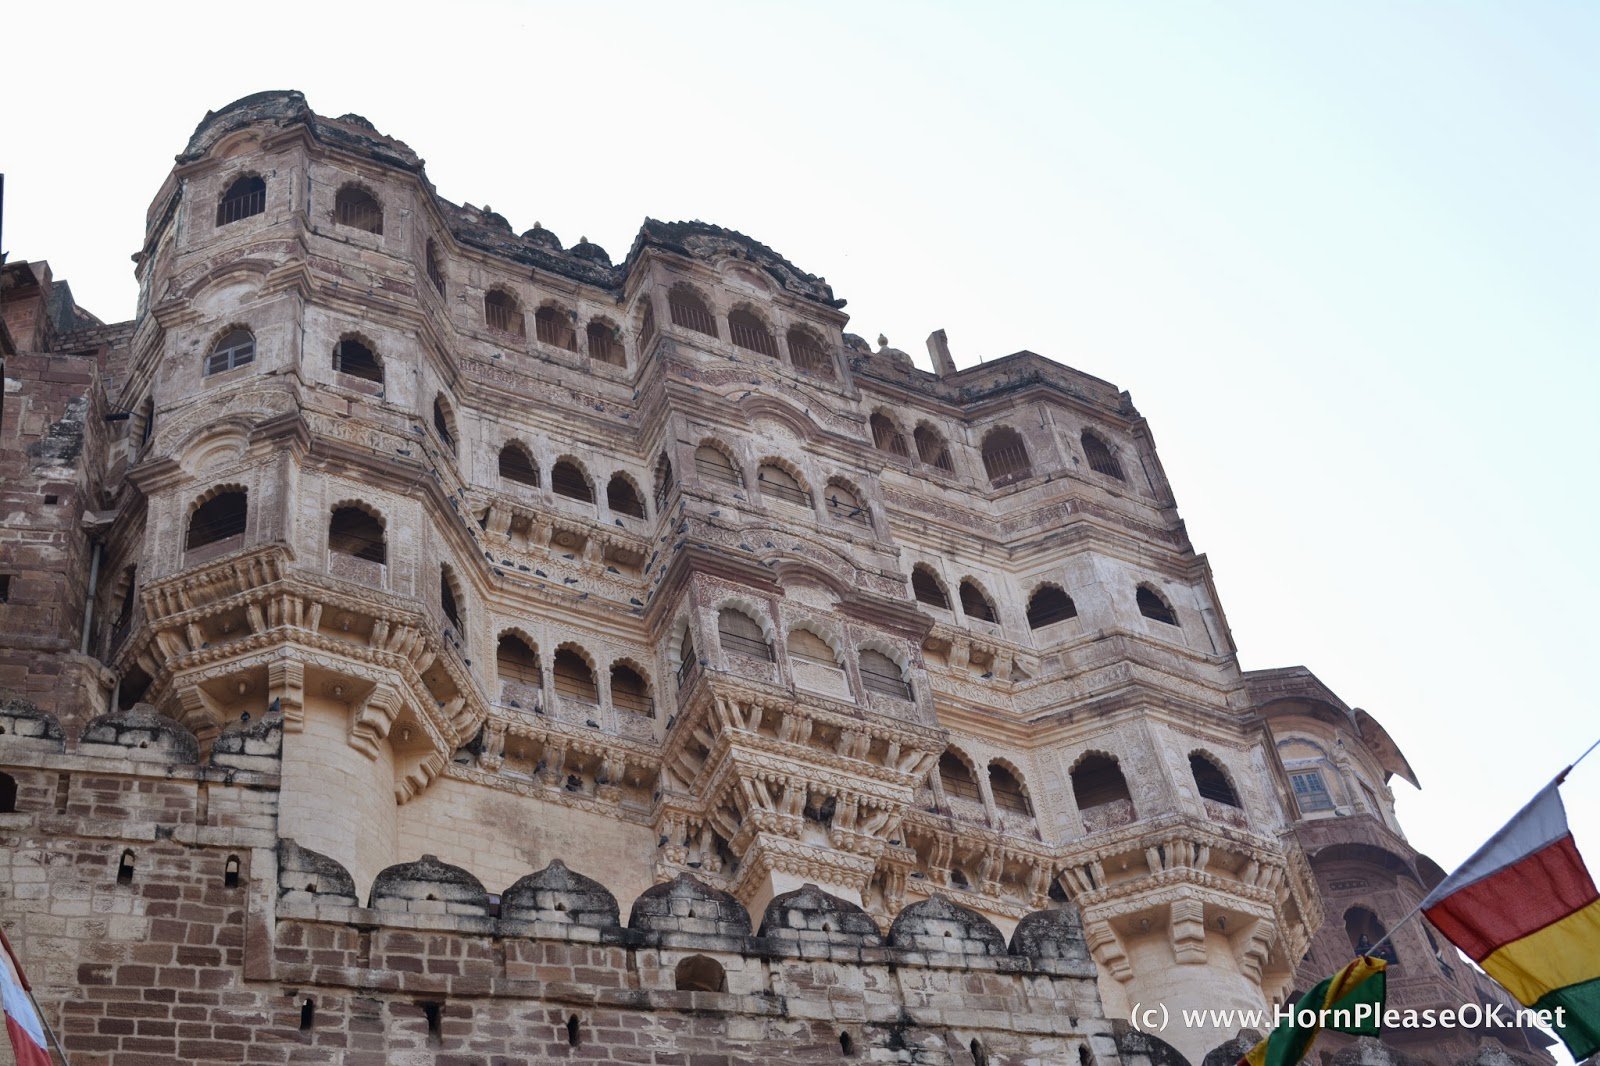 The first palace visible inside the Mehrangarh Fort complex